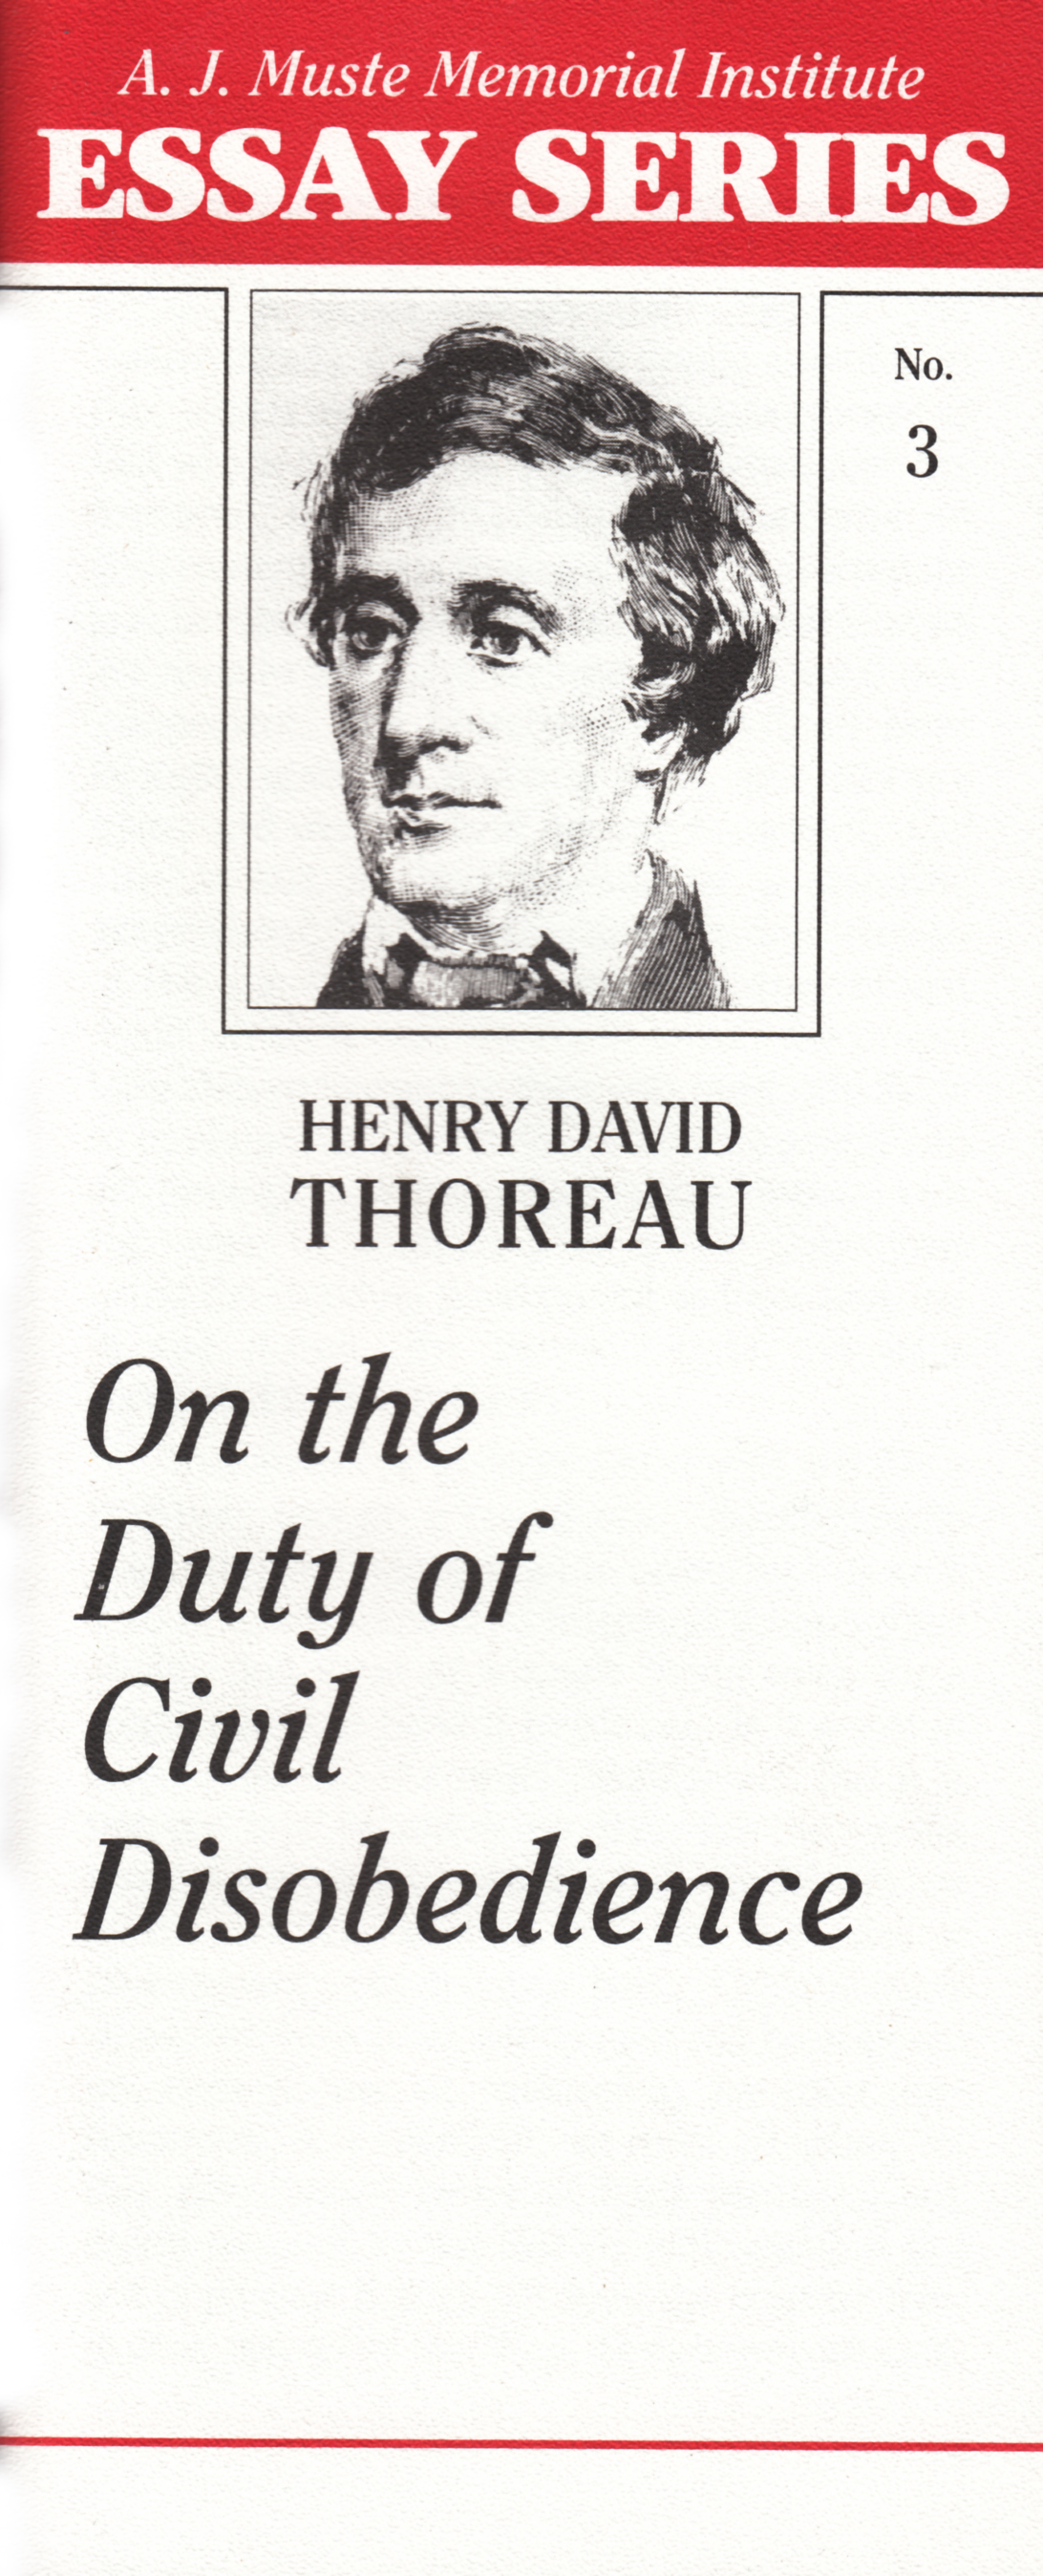 an analysis of civil disobedience an essay by henry david thoreau